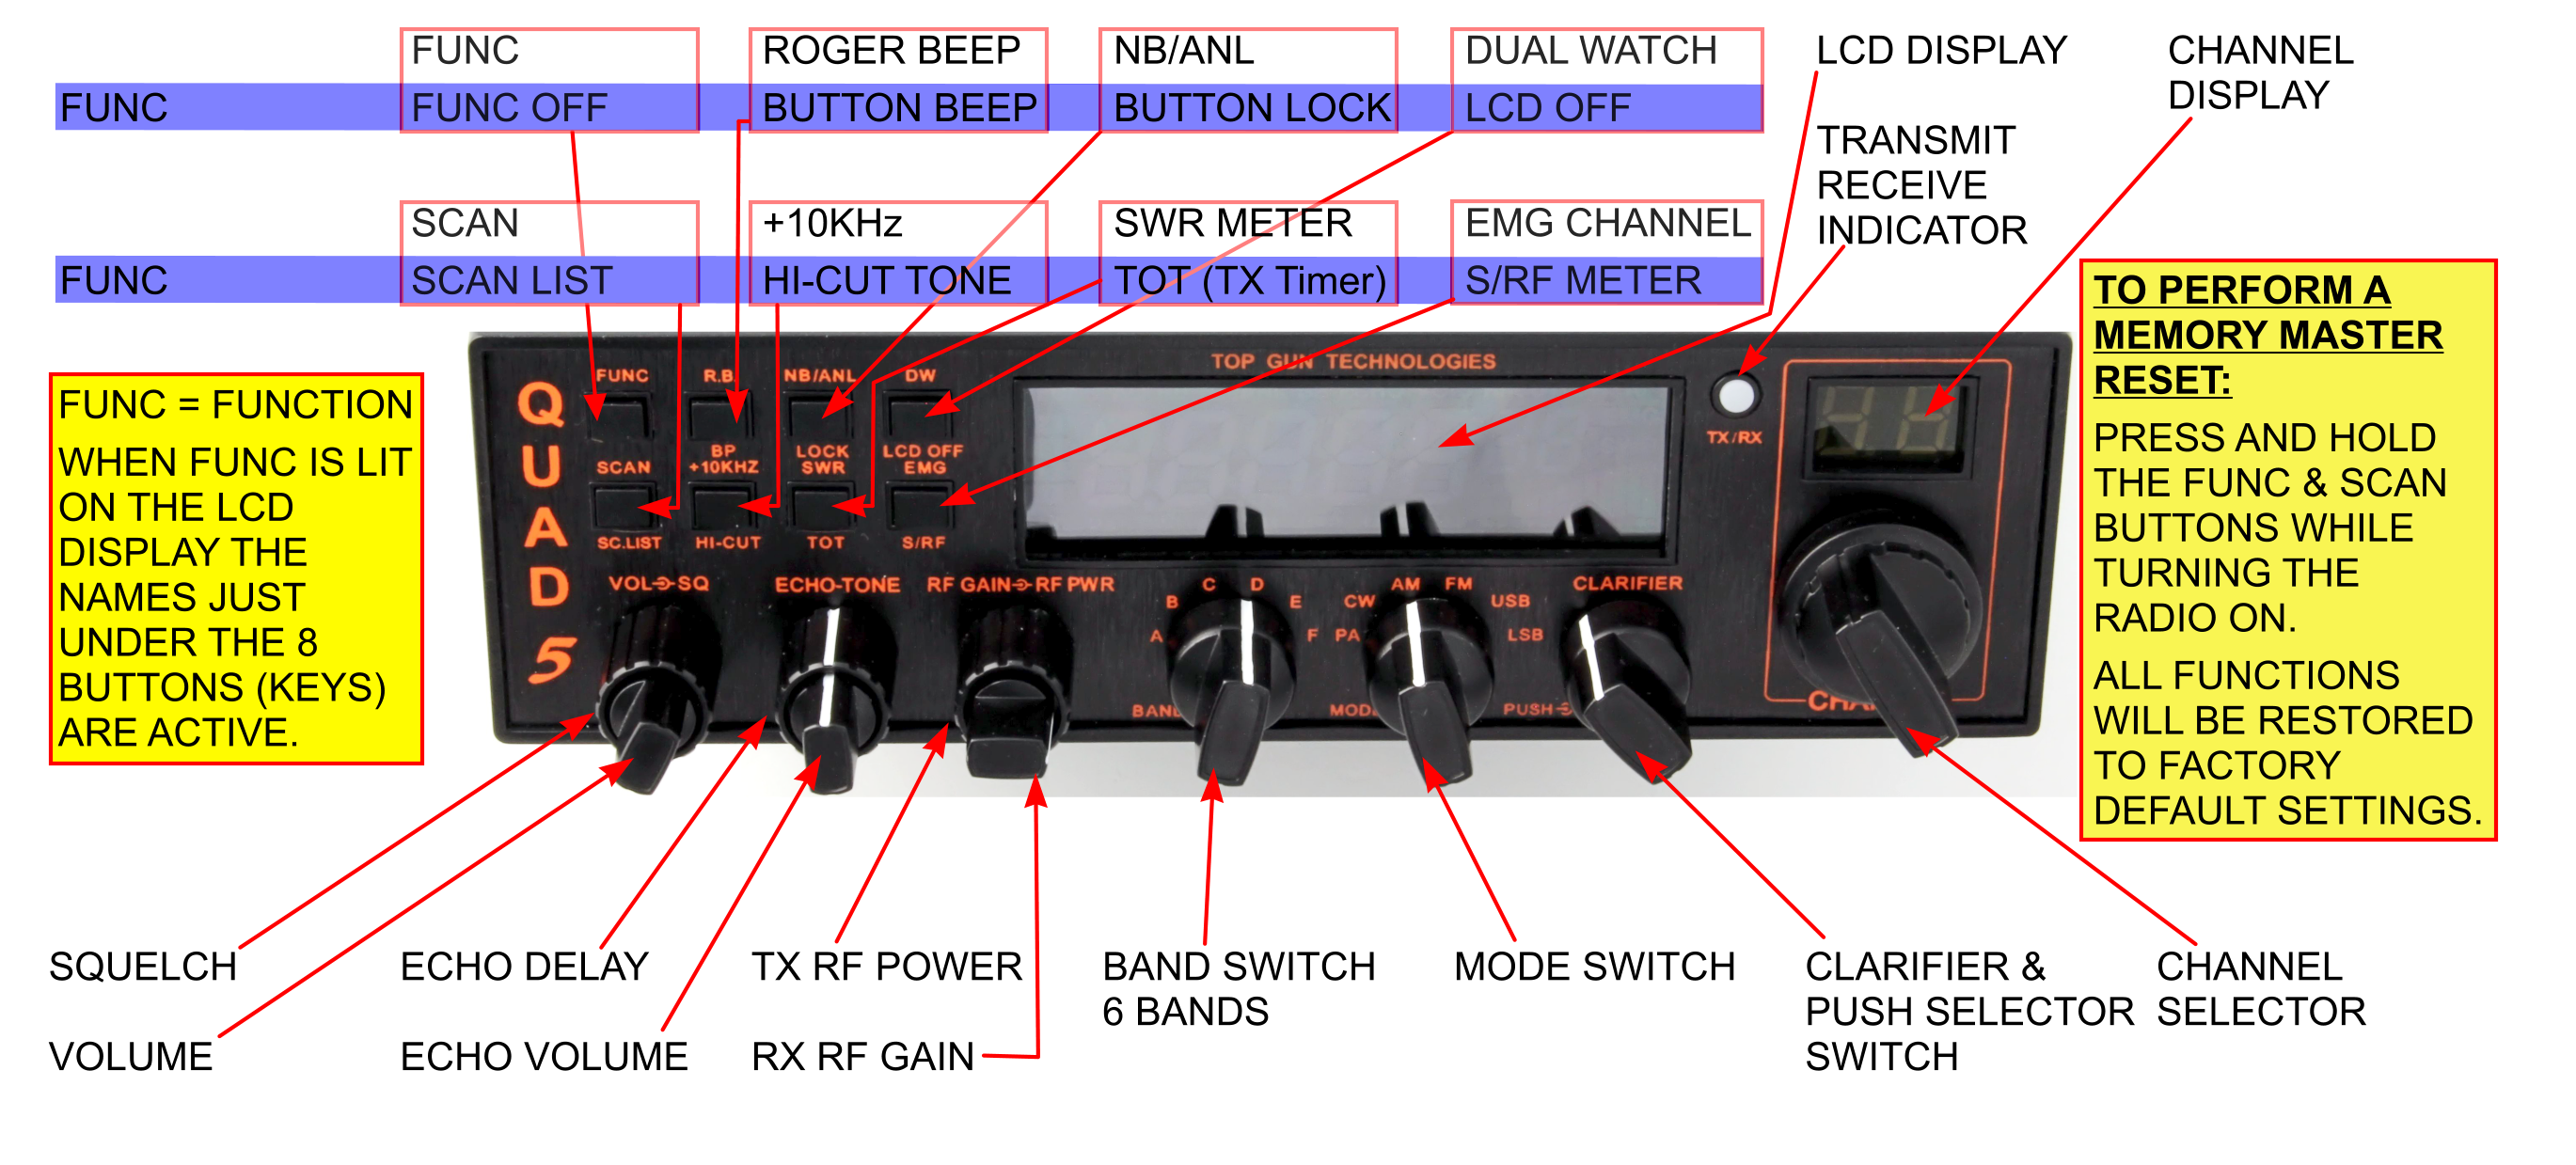 Quick Ref Back on Schematic Wiring Diagram Of Cobra Mic